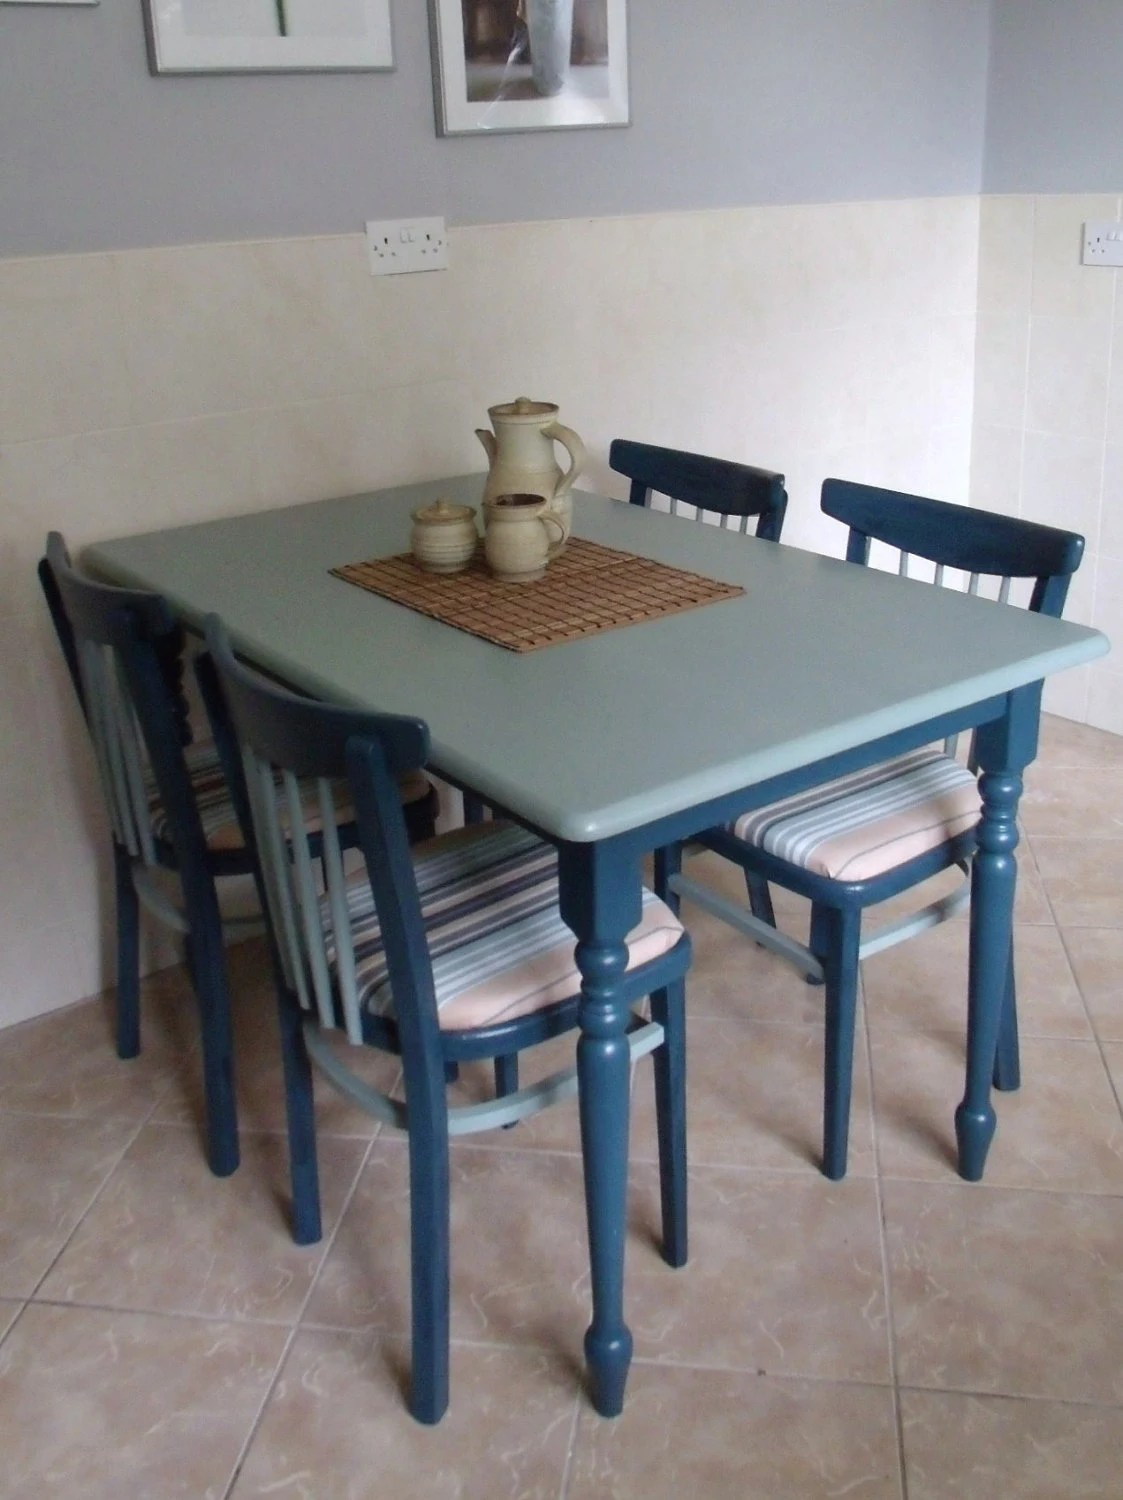 Country Kitchen Chairs Farmhouse Country Kitchen Dining Table And 4 Chairs Upcycled In Aubusson And Duck Egg Blue